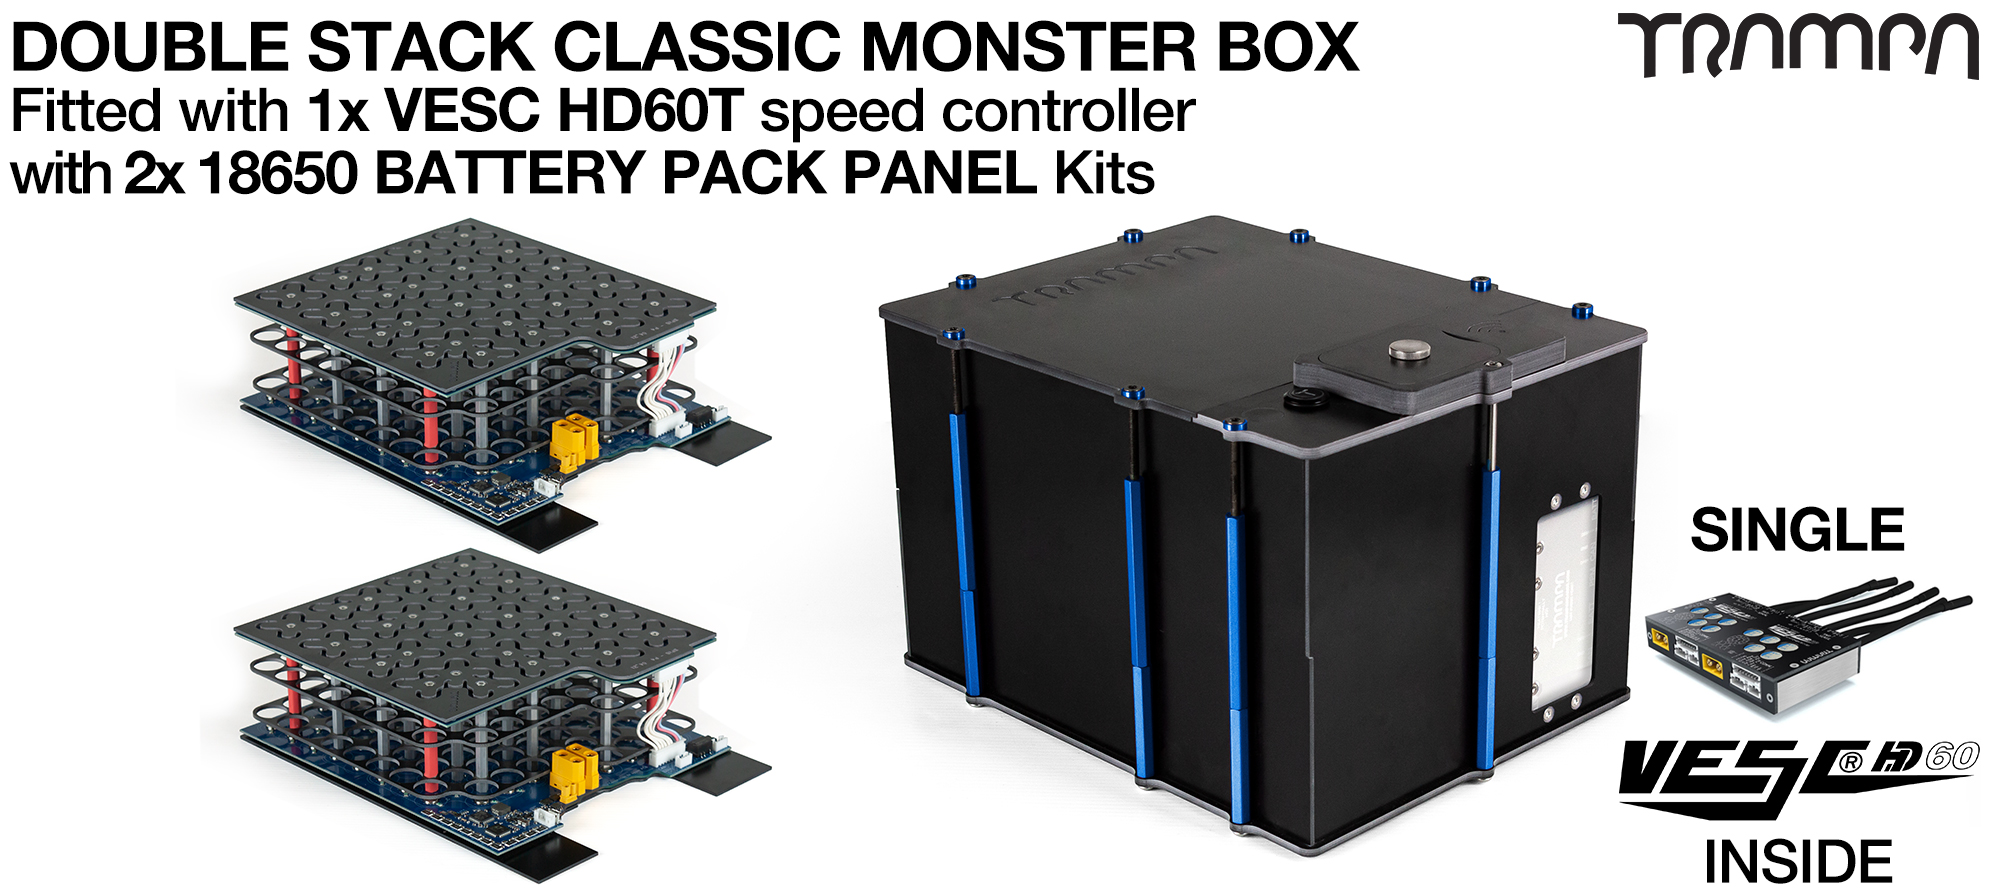 Classic MONSTER Box MkV DOUBLE STACKER - with 18650 PCB Pack & VESC HD-60 Twin - NO CELLS PCB based Battery Pack with Integrated Battery Management System (BMS) - NO Cells